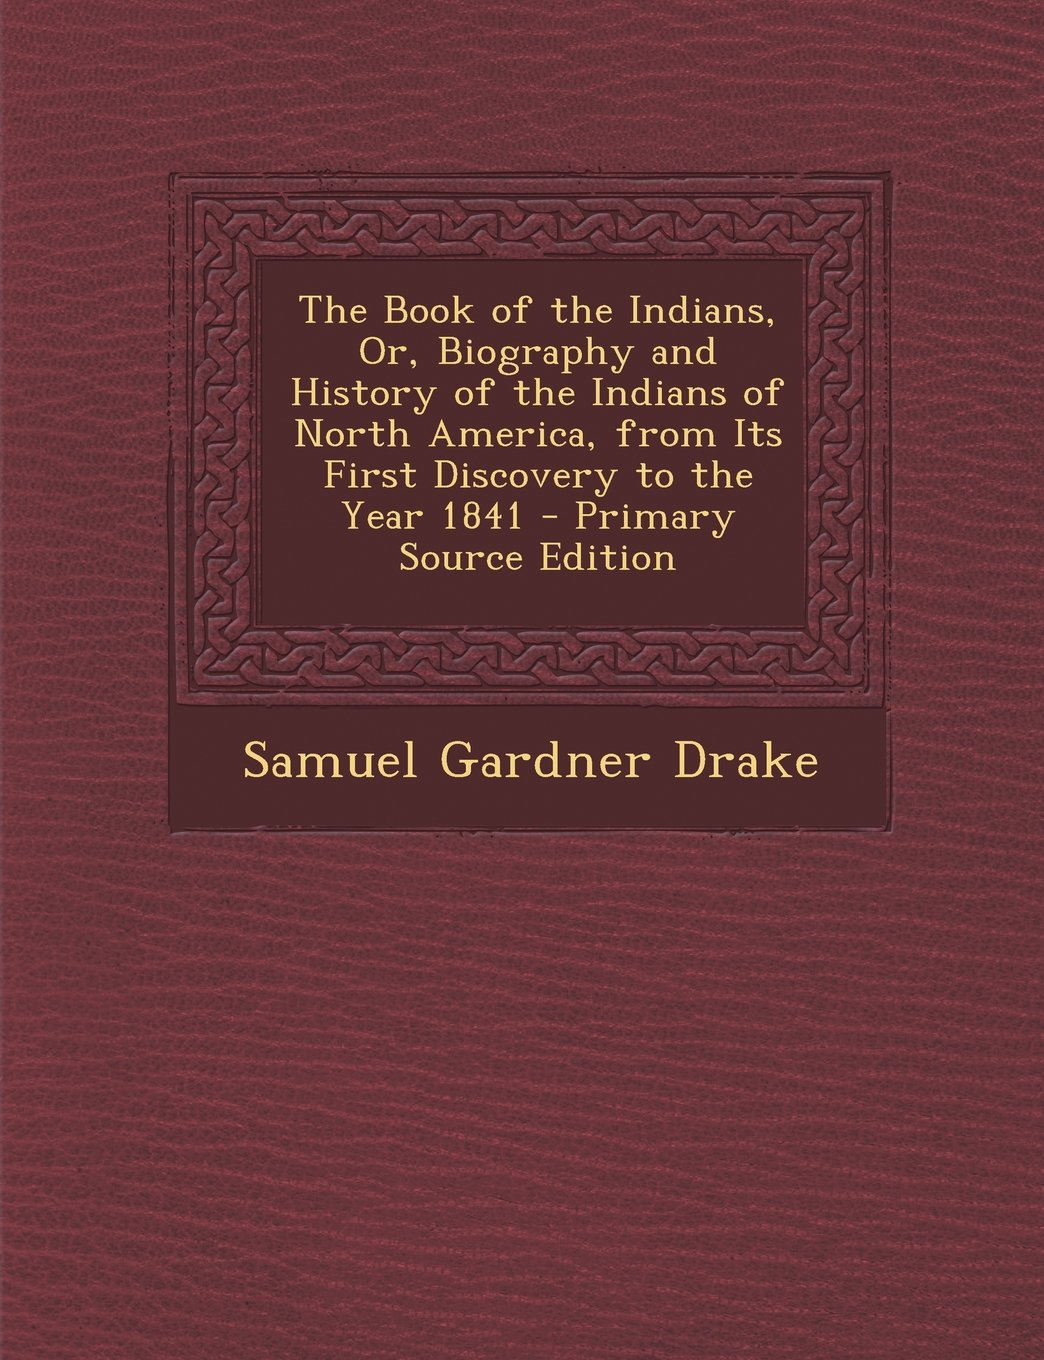 The Book of the Indians, Or, Biography and History of the Indians of North America, from Its First Discovery to the Year 1841 pdf epub